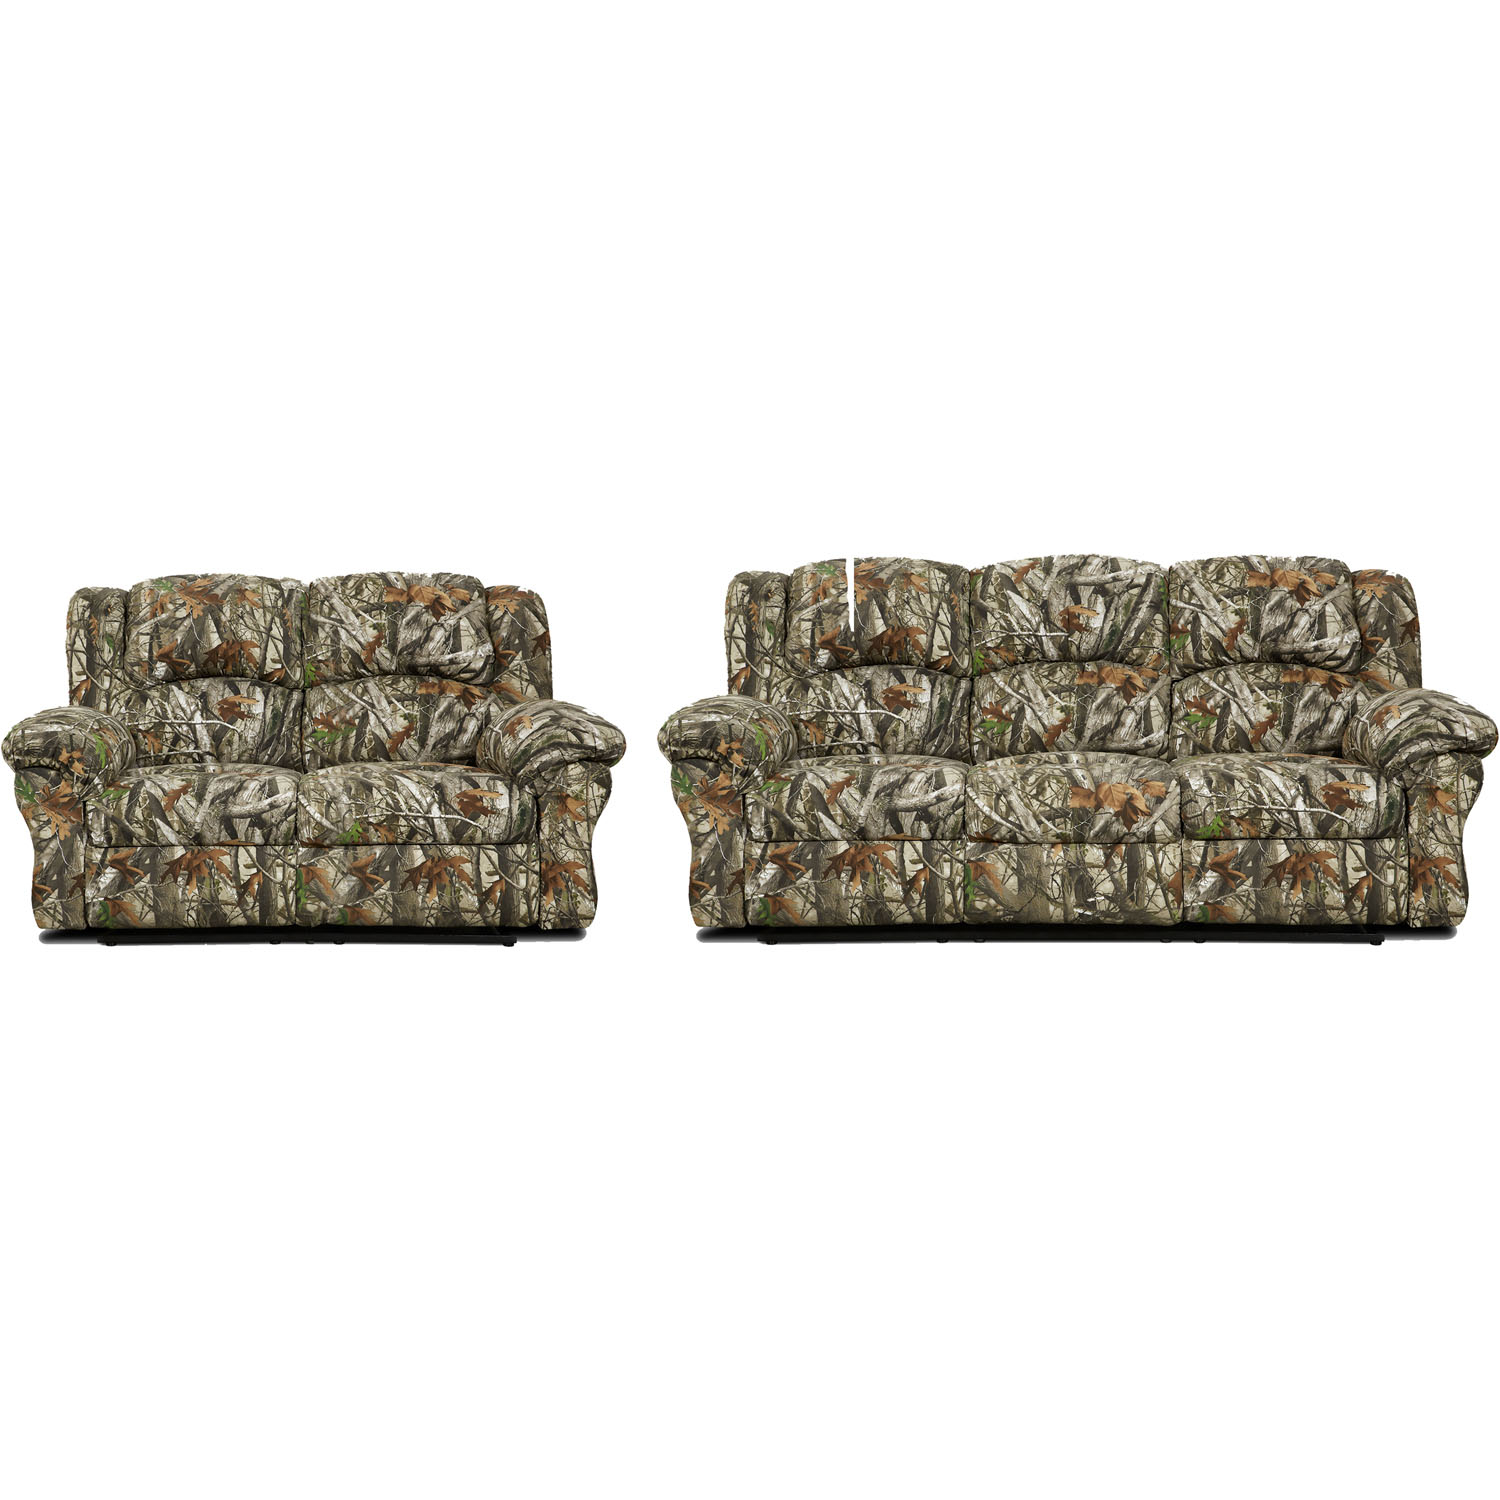 Cambridge Camo Two Piece Living Room Set Sofa Loveseat intended for 13 Genius Ways How to Improve Camouflage Living Room Sets